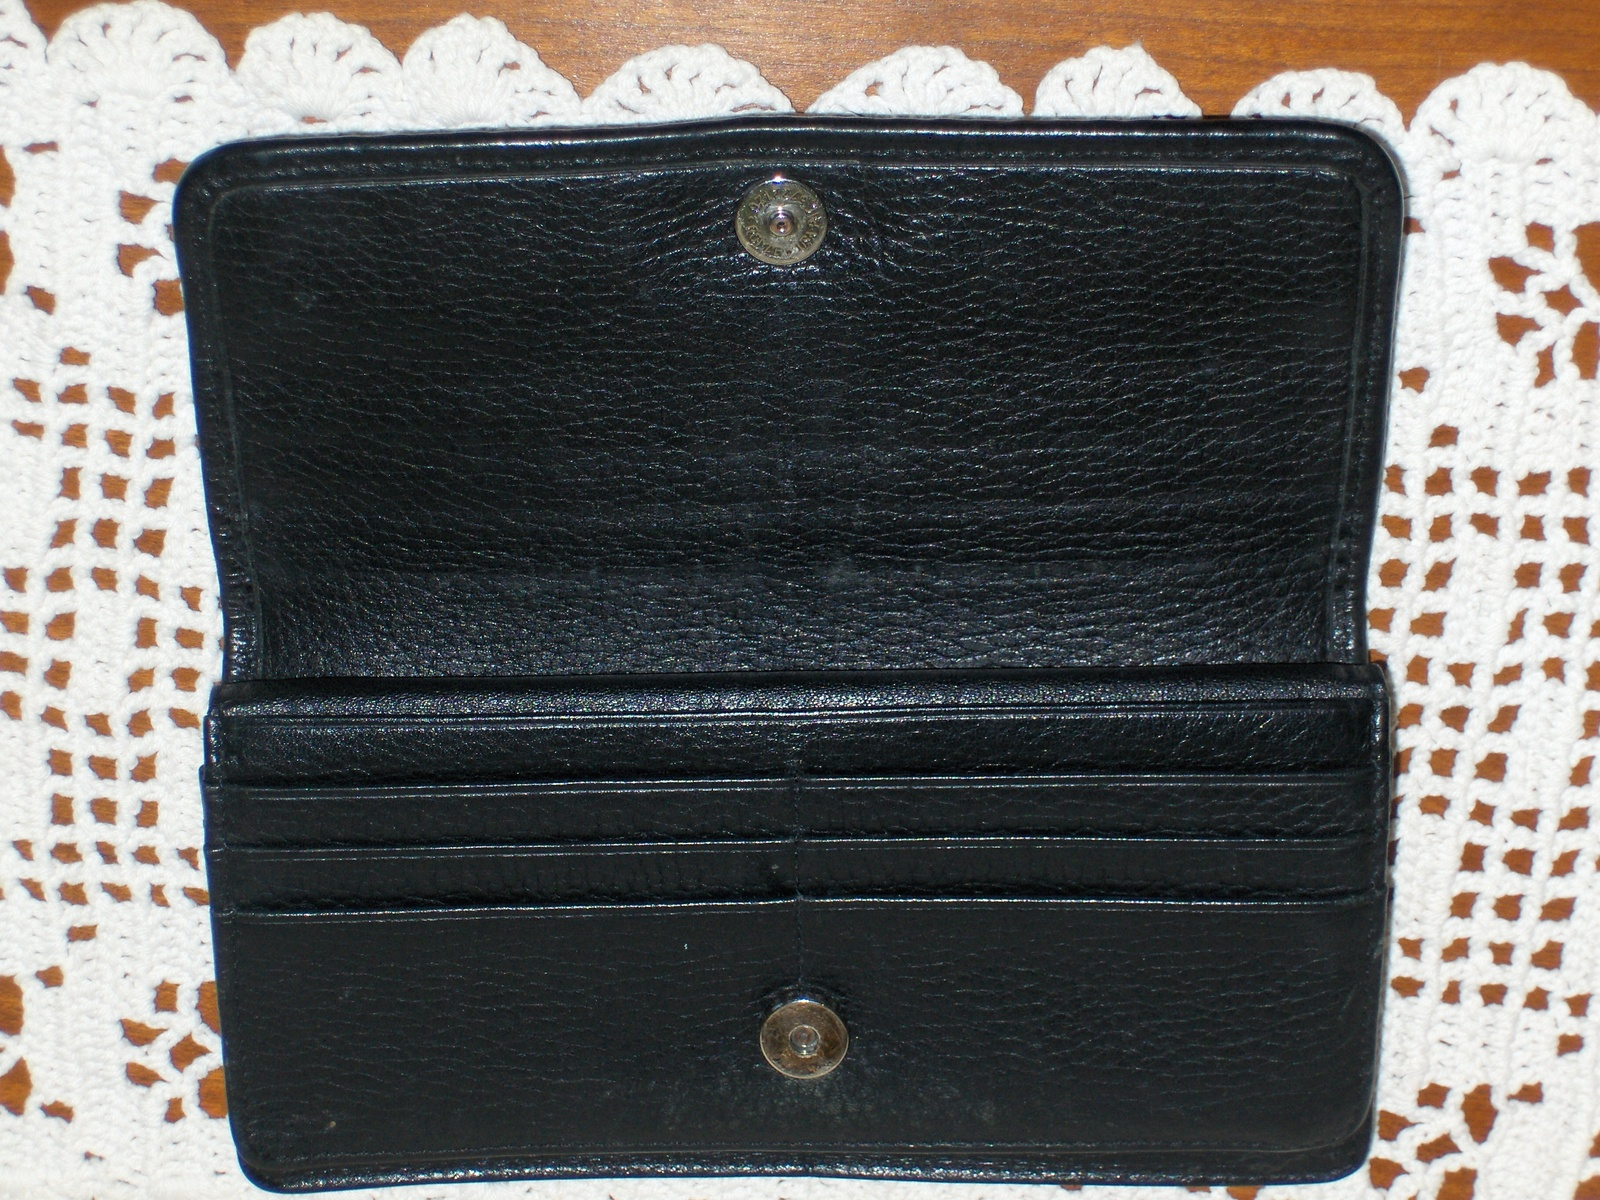 Brighton Wallet on String Organizer Purse Clutch Handbag Black Leather NO STRAP